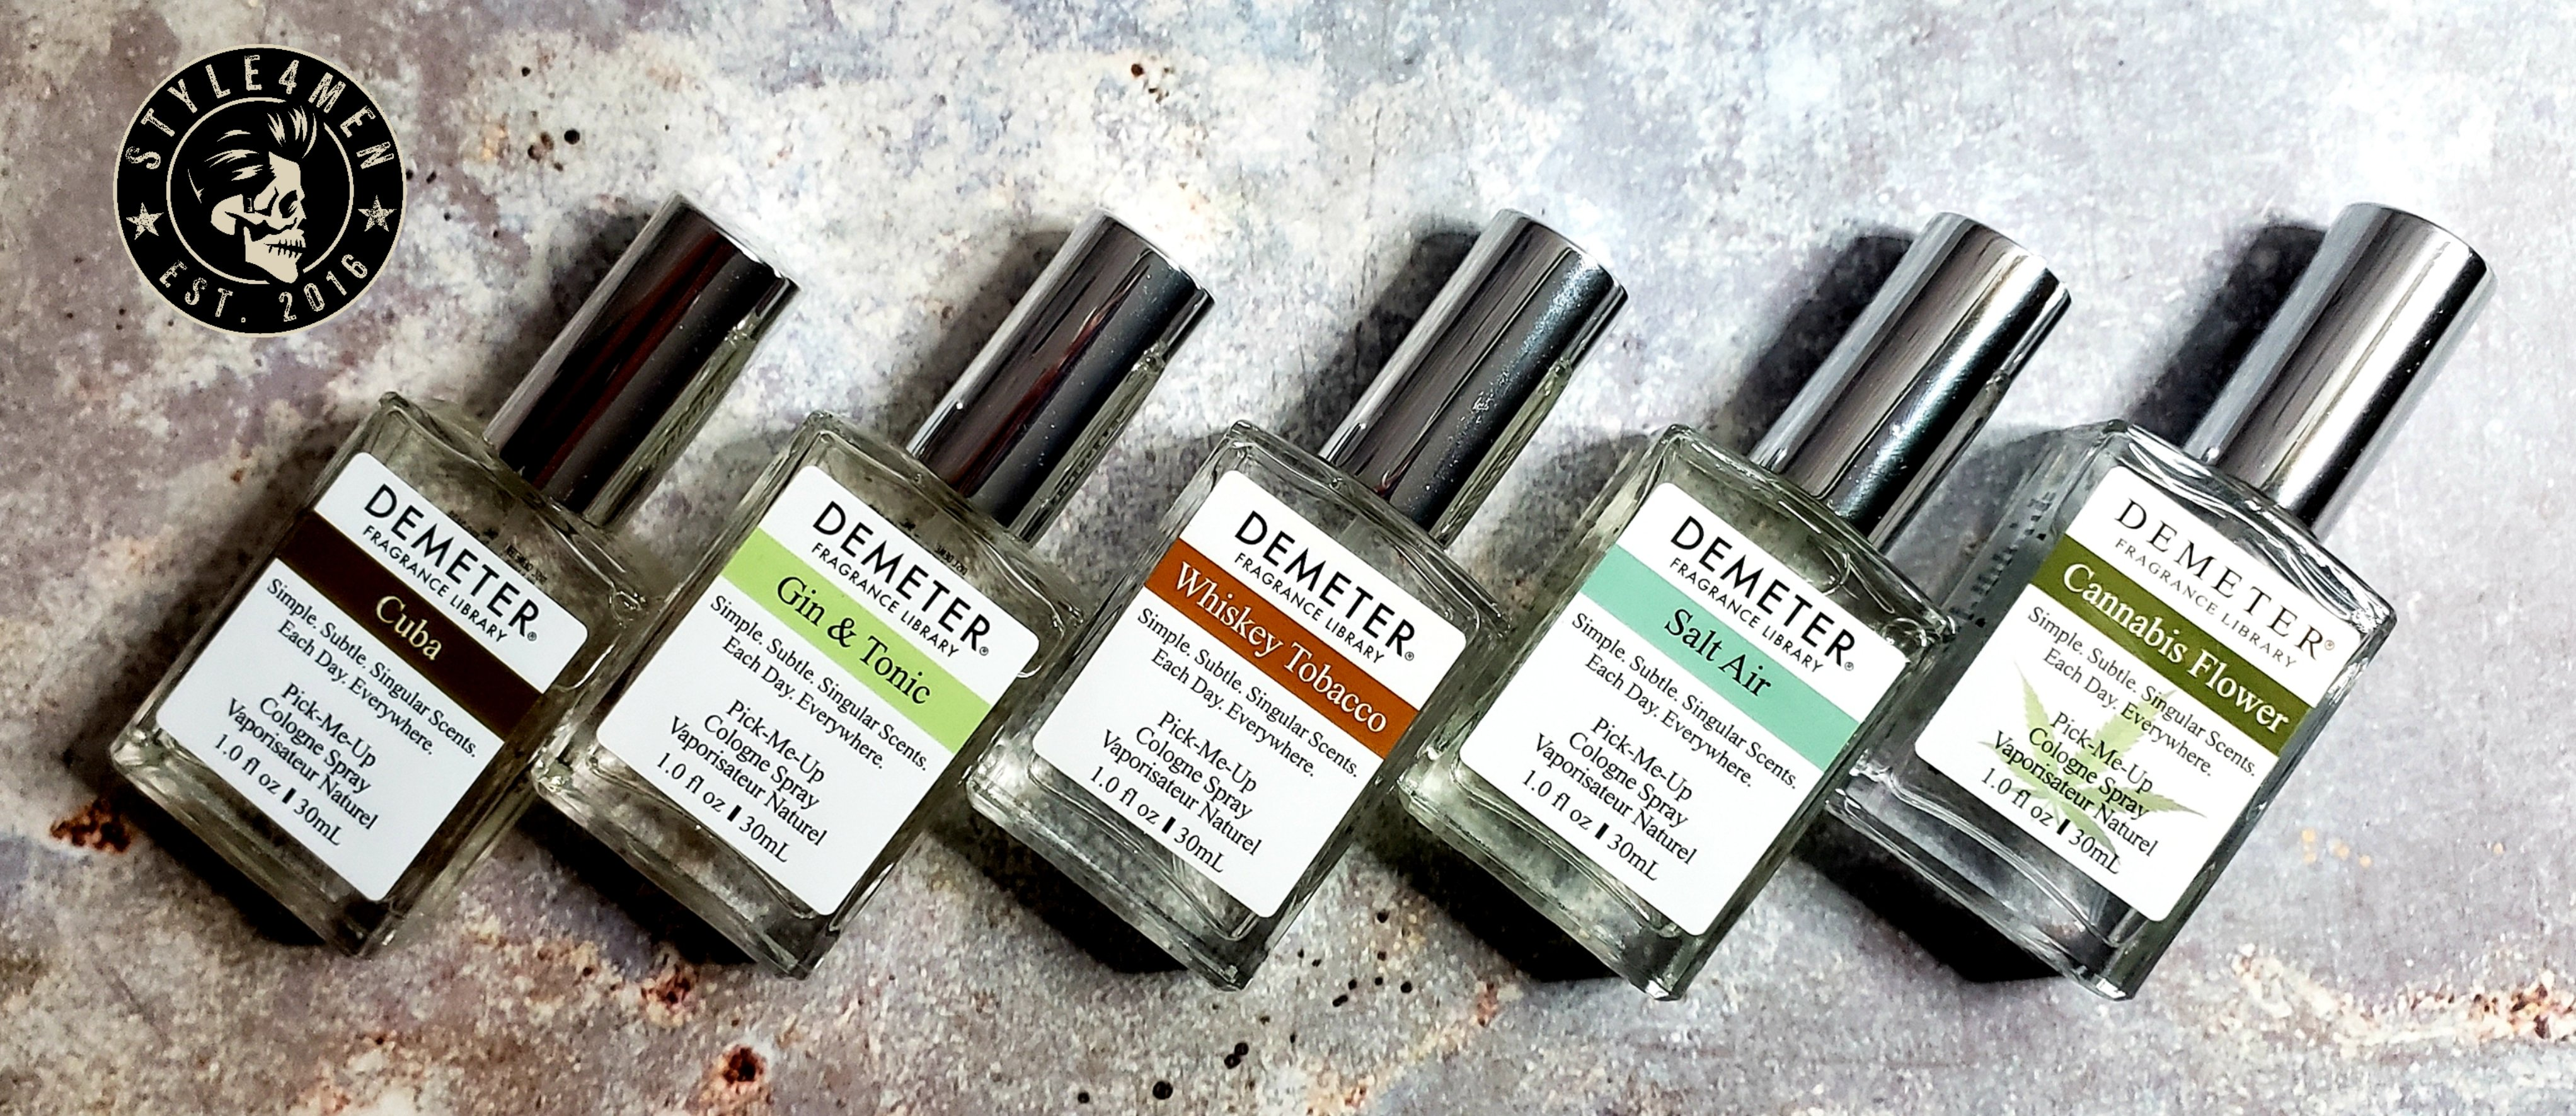 The amazing DEMETER Fragrance Library